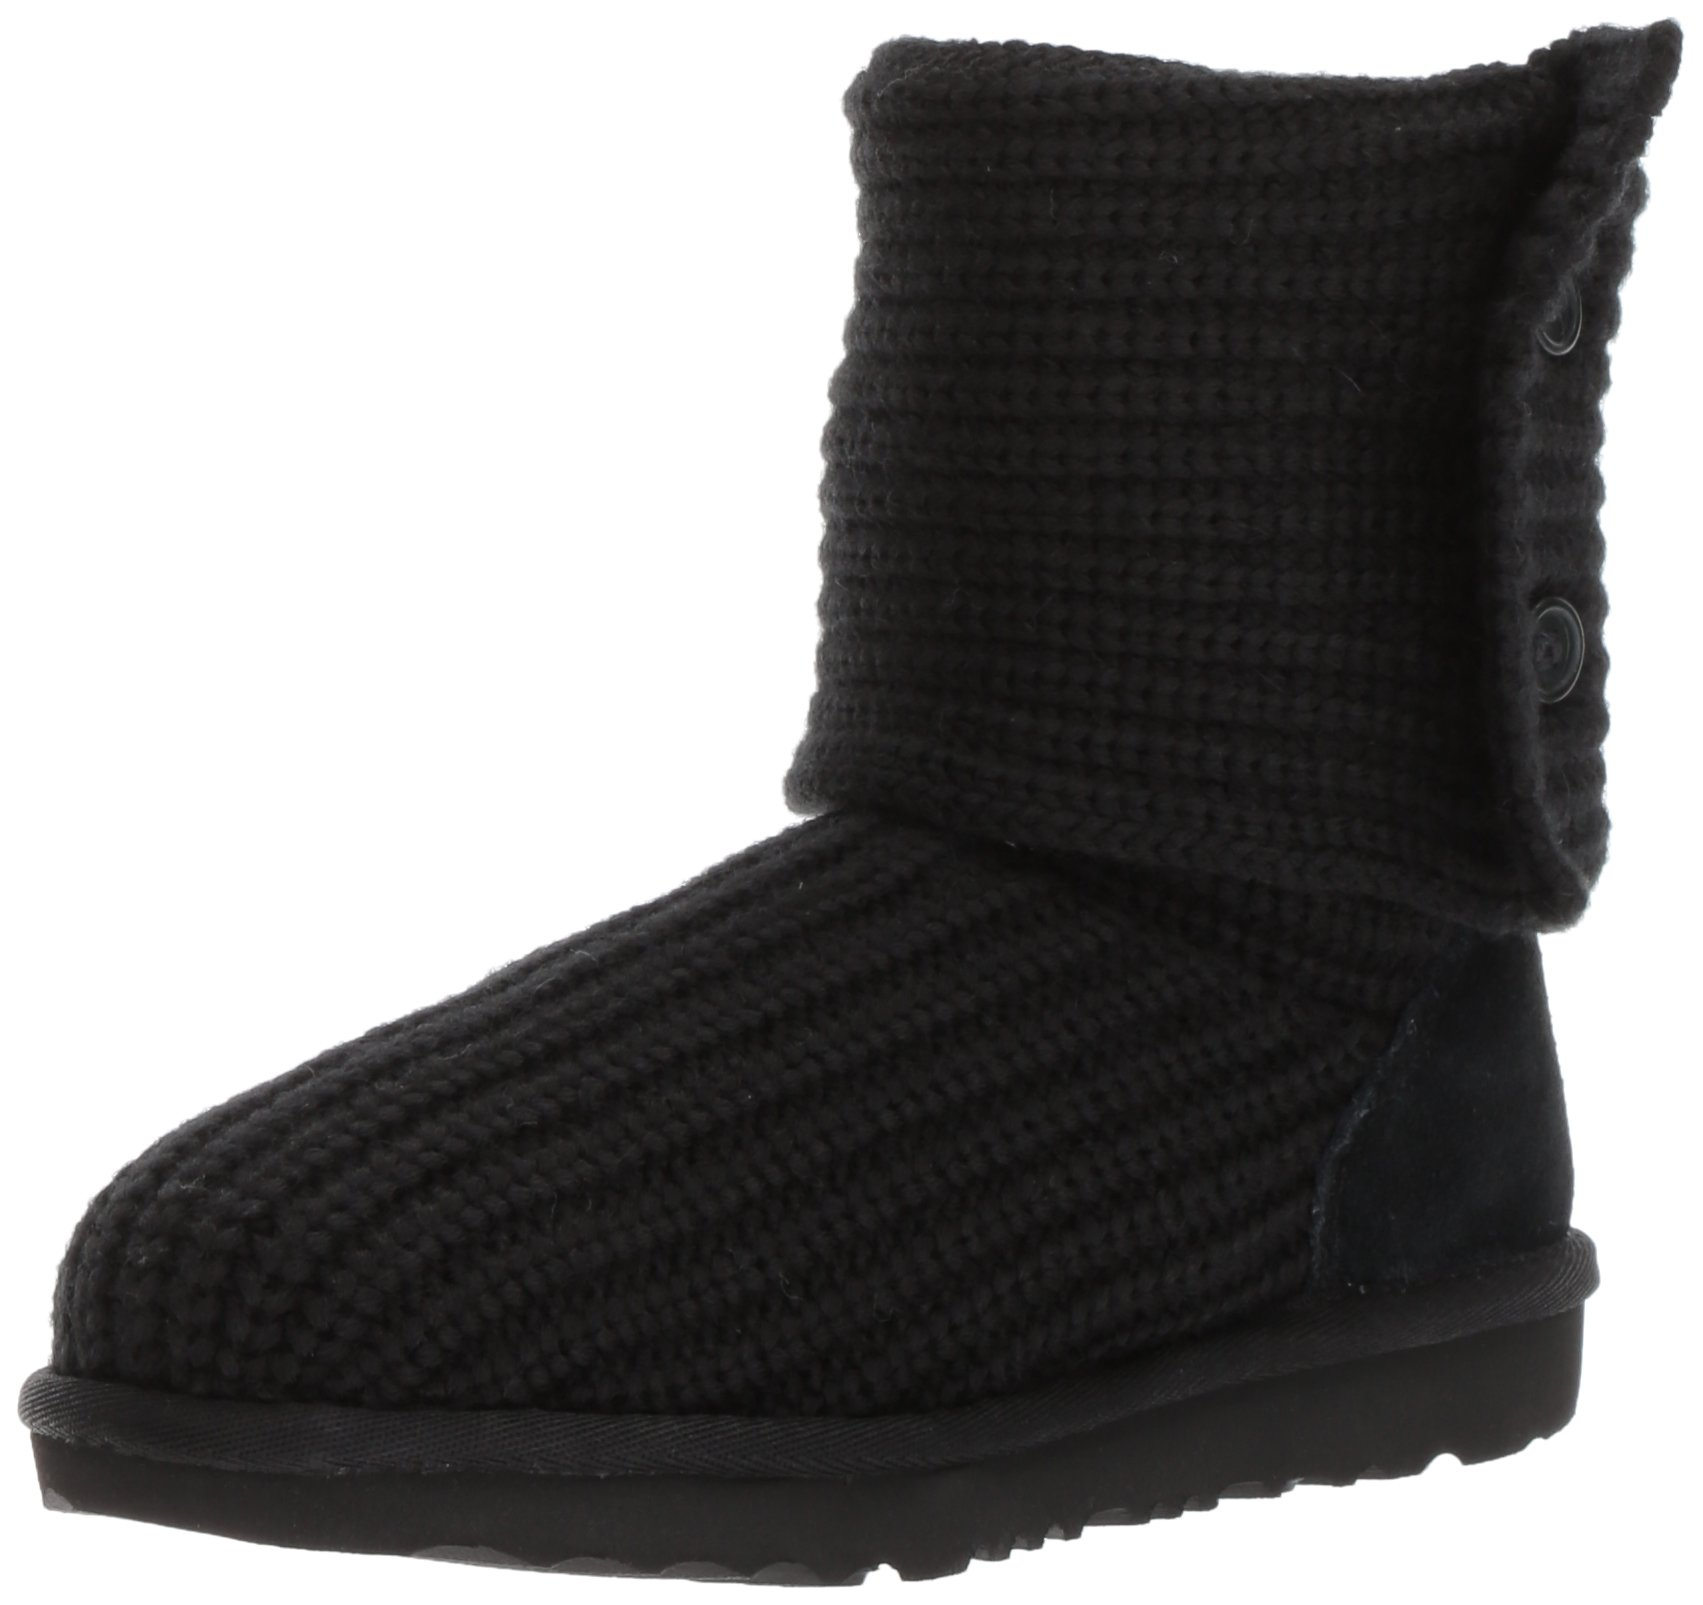 UGG Girls K Cardy II Pull-on Boot, Black, 10 M US Toddler